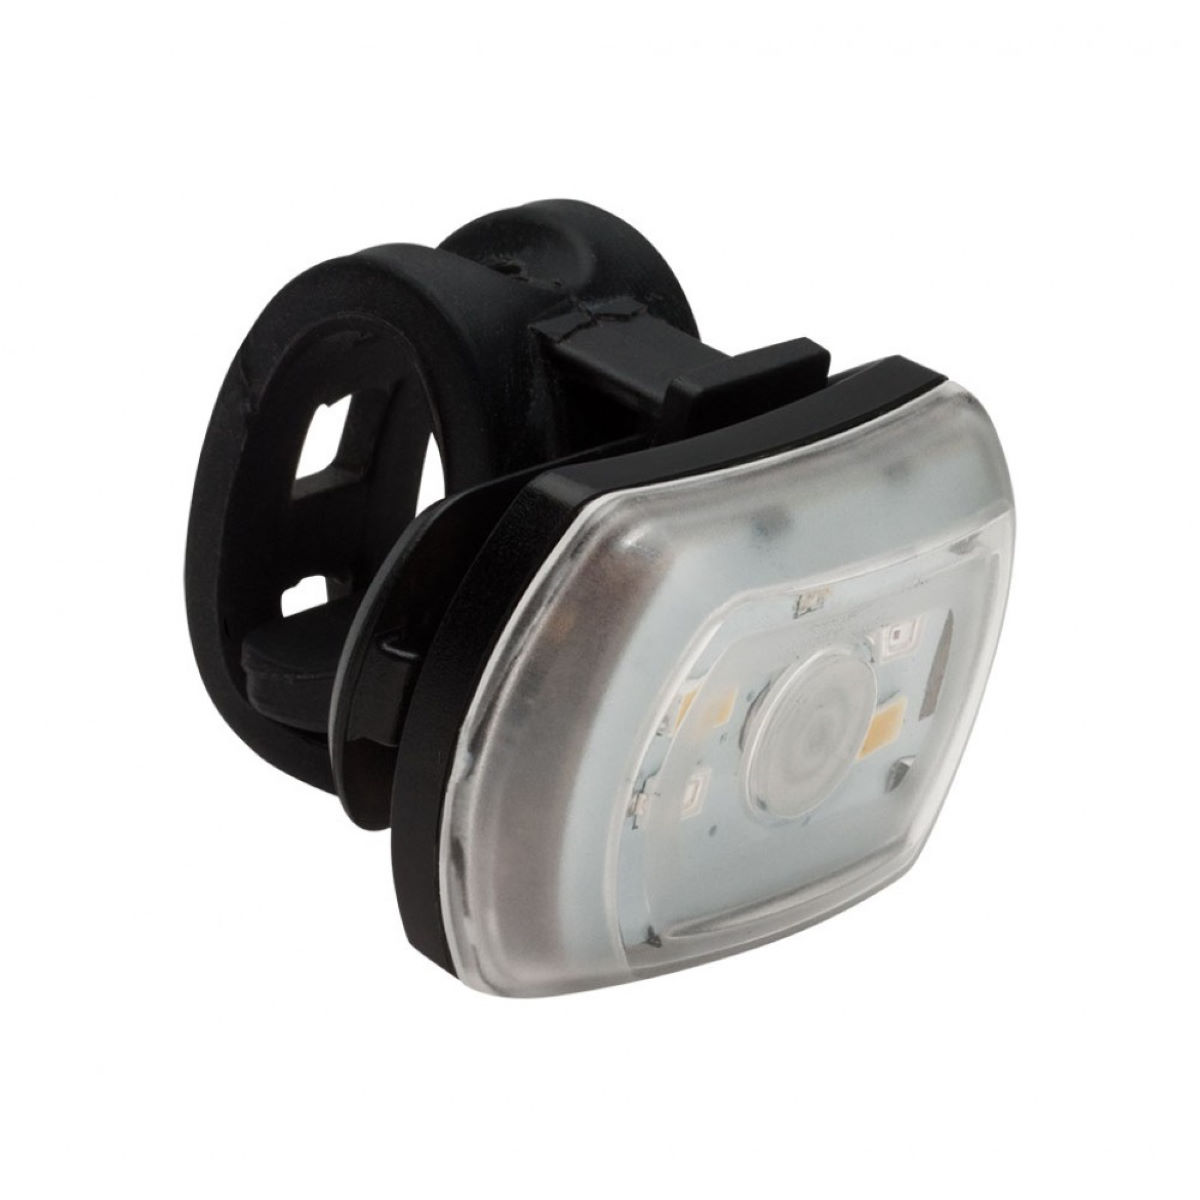 Blackburn 2'Fer 60/20 Front/Rear Single Light - Luces delanteras